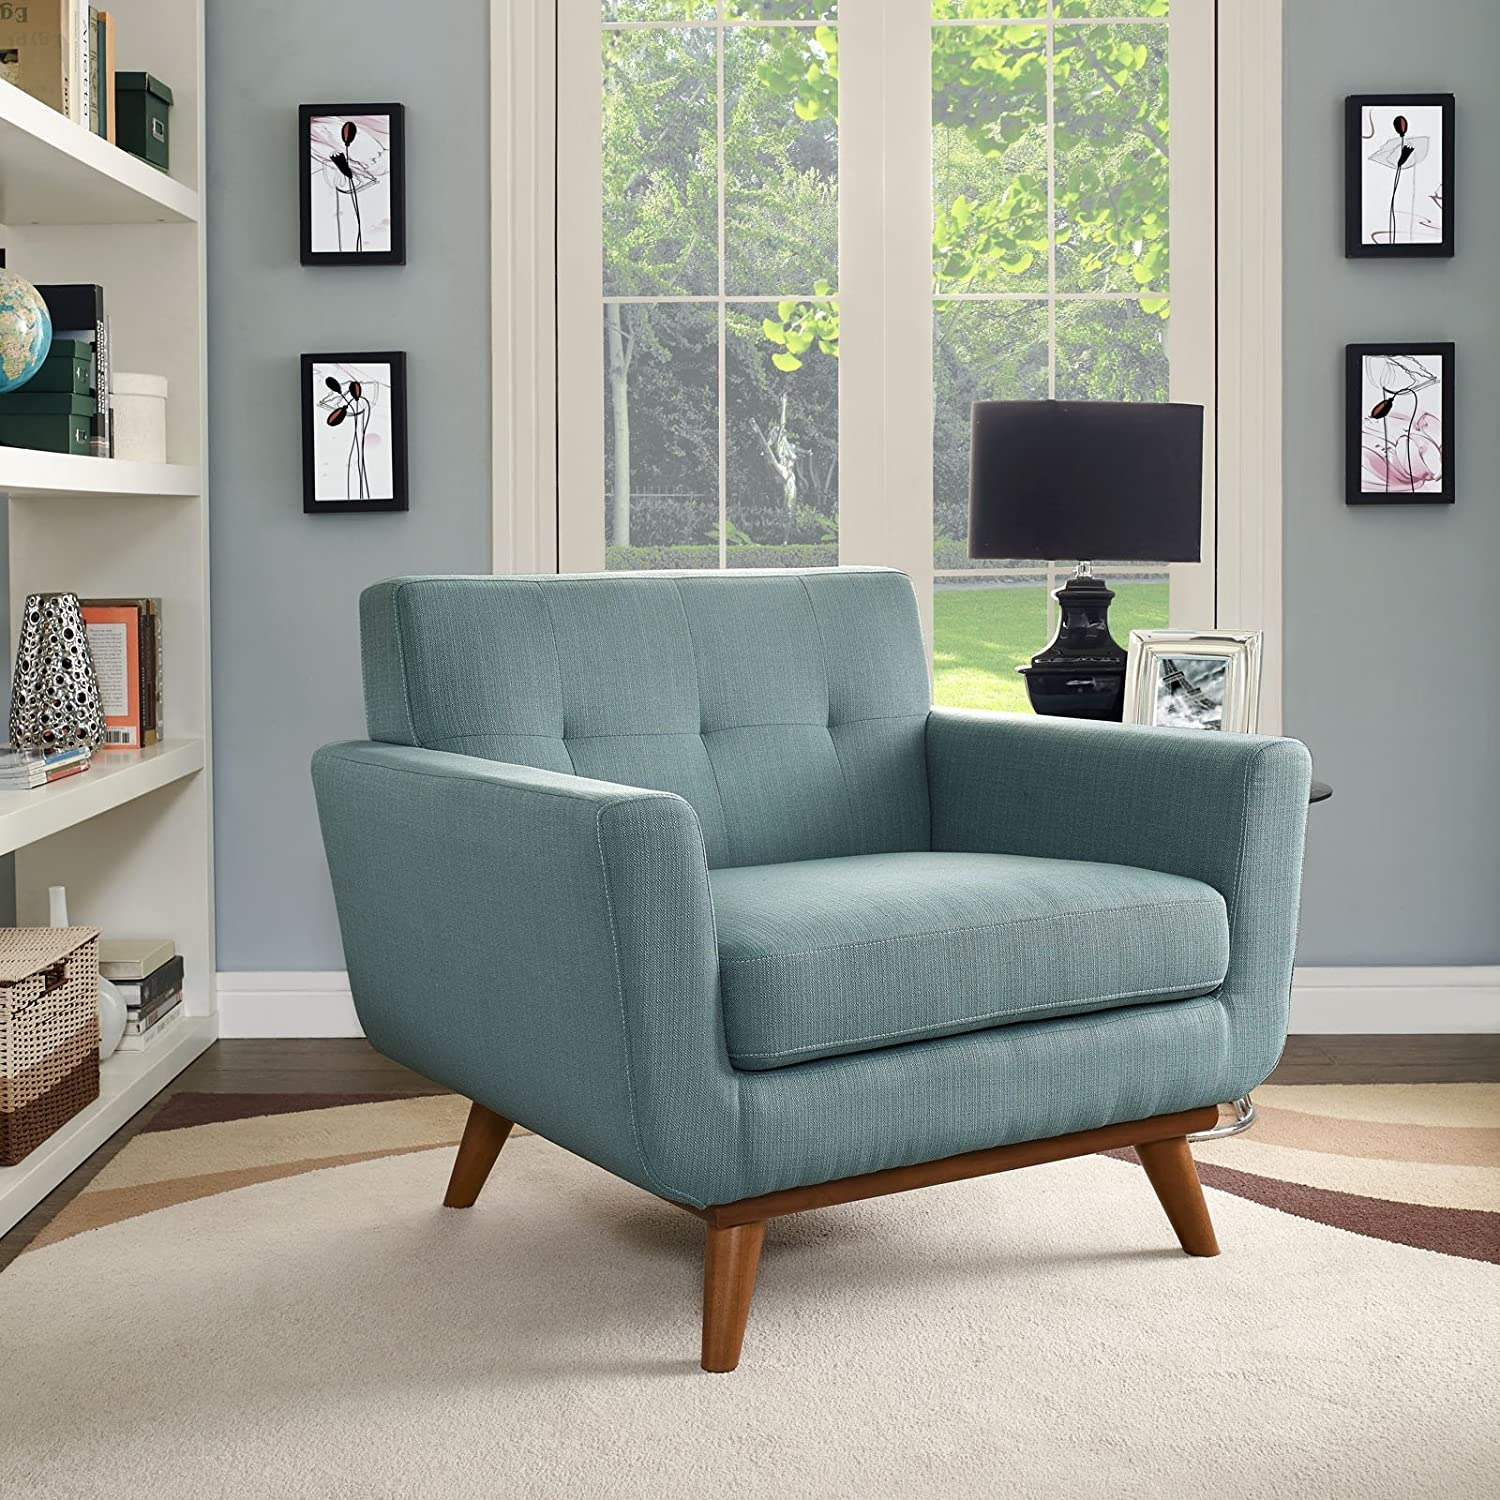 Armchair In Laguna Fabric W/ 3 Tufted Buttons - image-4